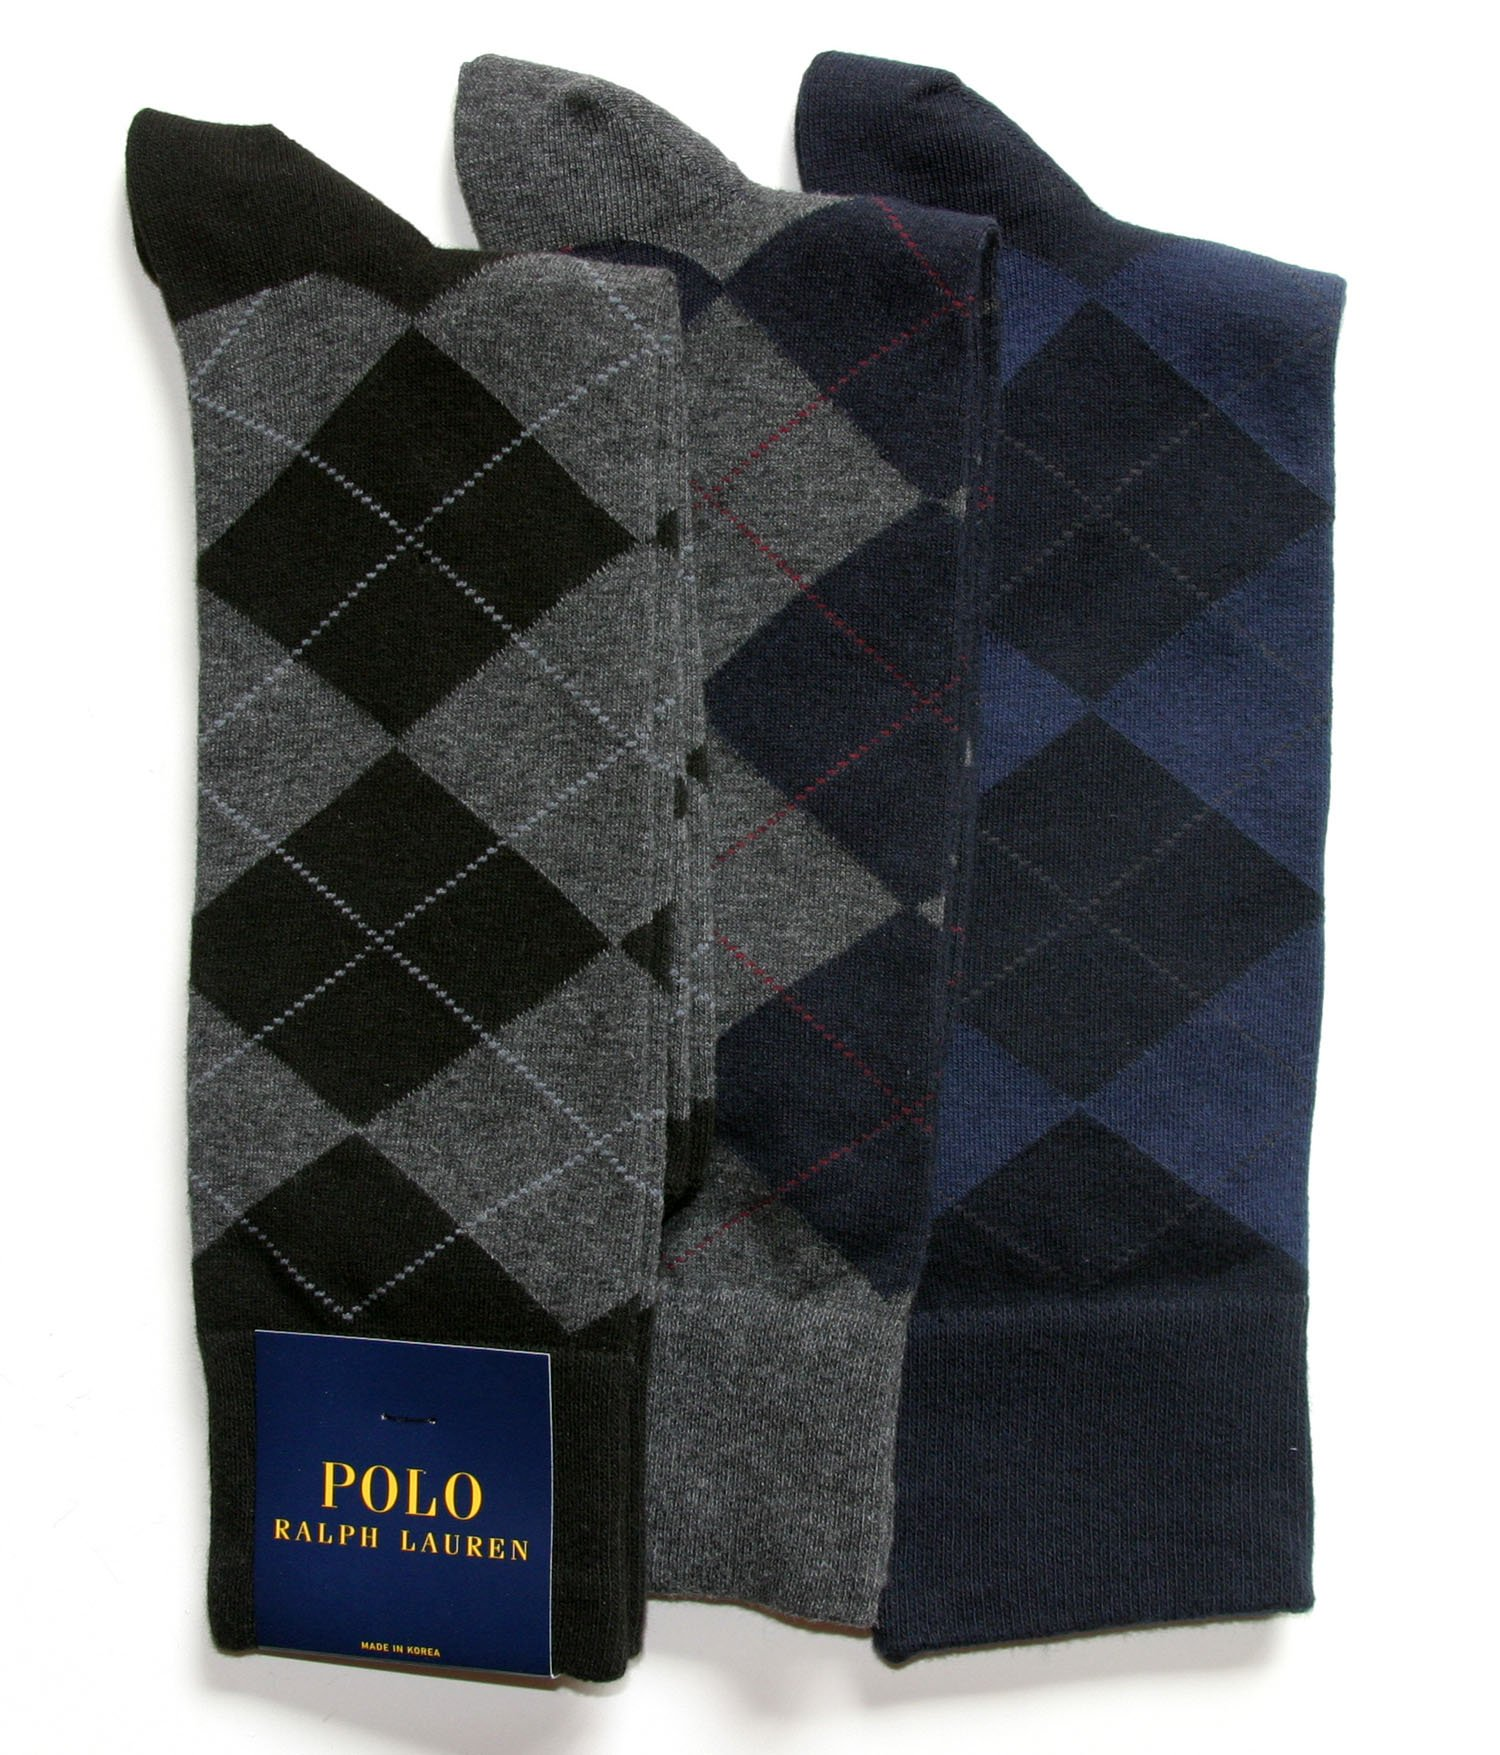 Polo Ralph Lauren Men's 3-Pack Argyle Dress Socks (Size 10-13, Assorted)